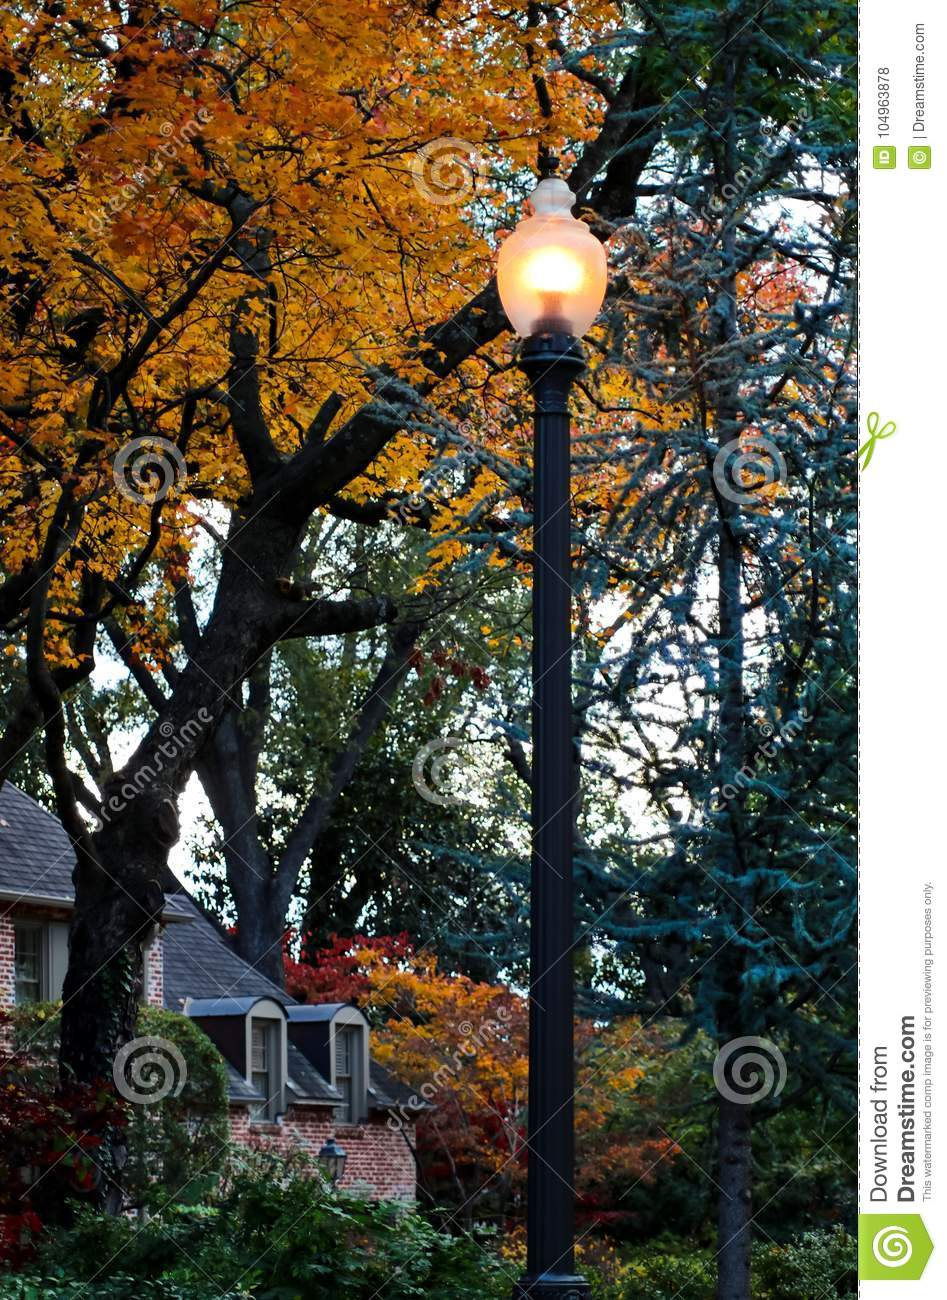 Lamp post in autumn neighborhood with house and colorful trees - one with a squirrel in it